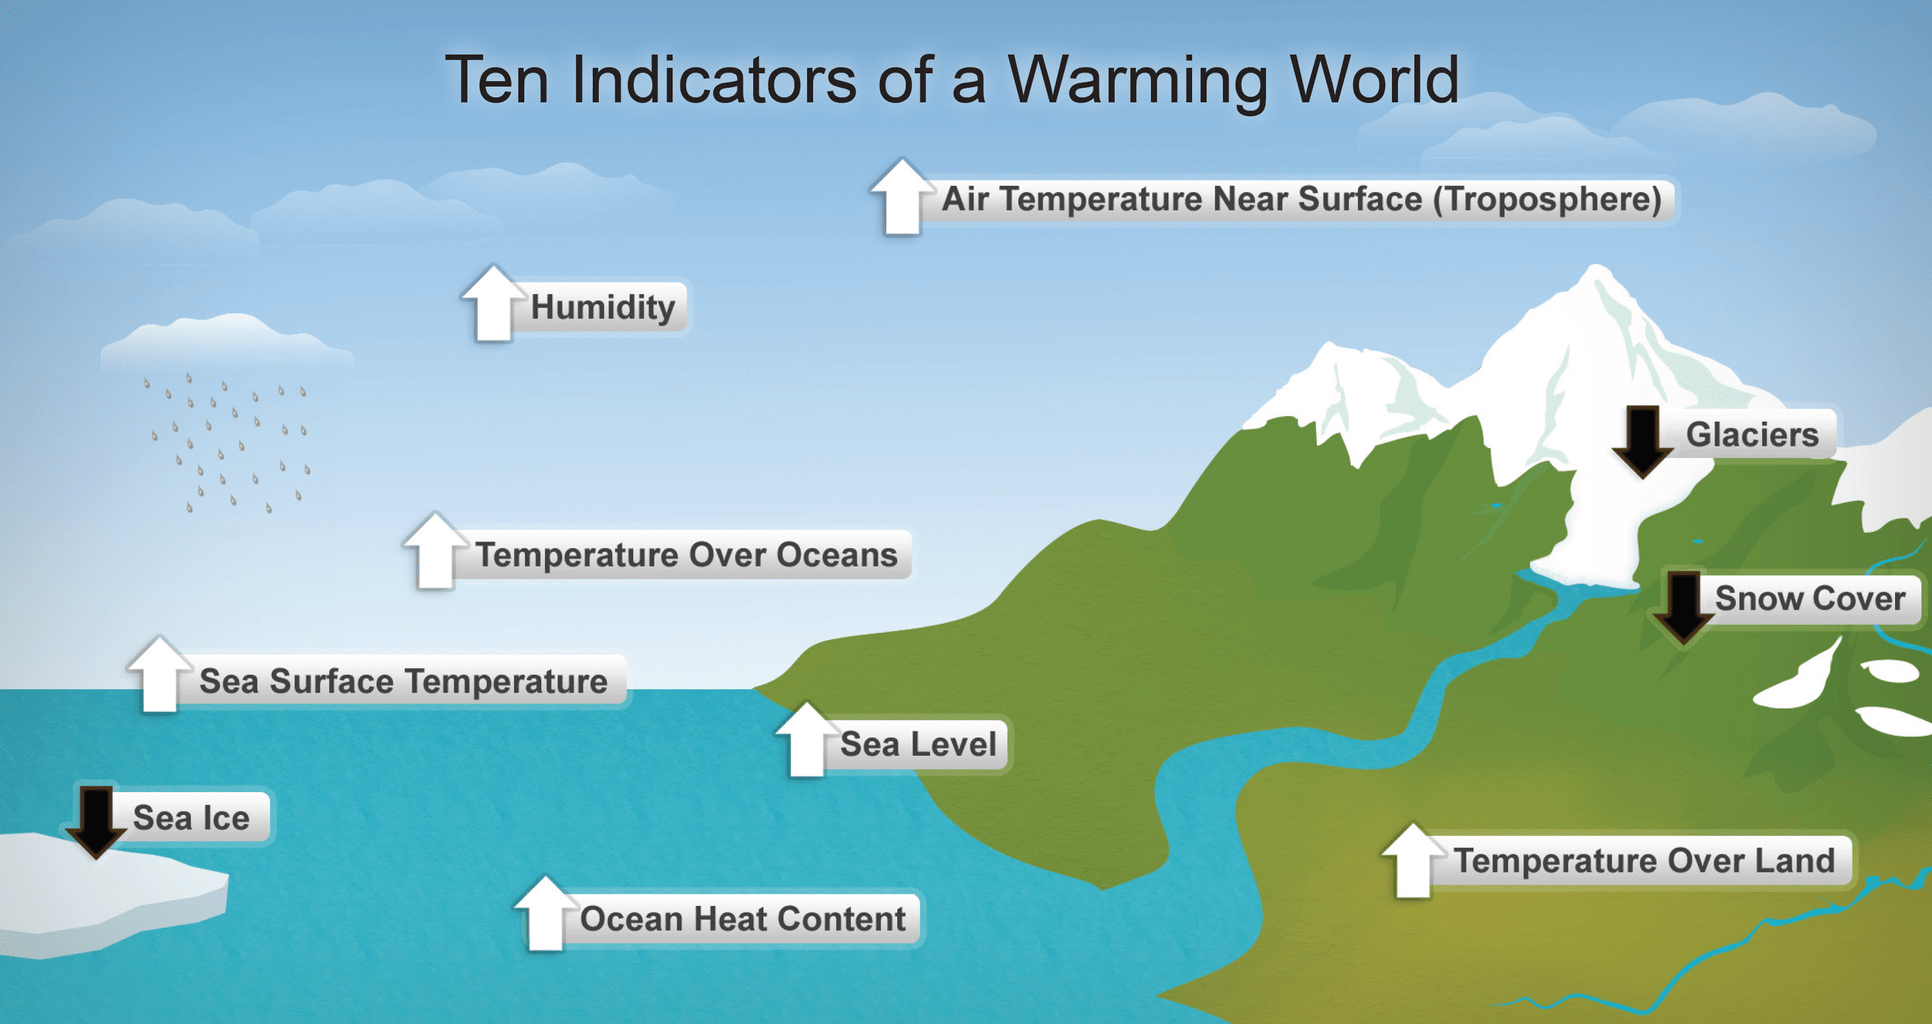 Indicators of global warming